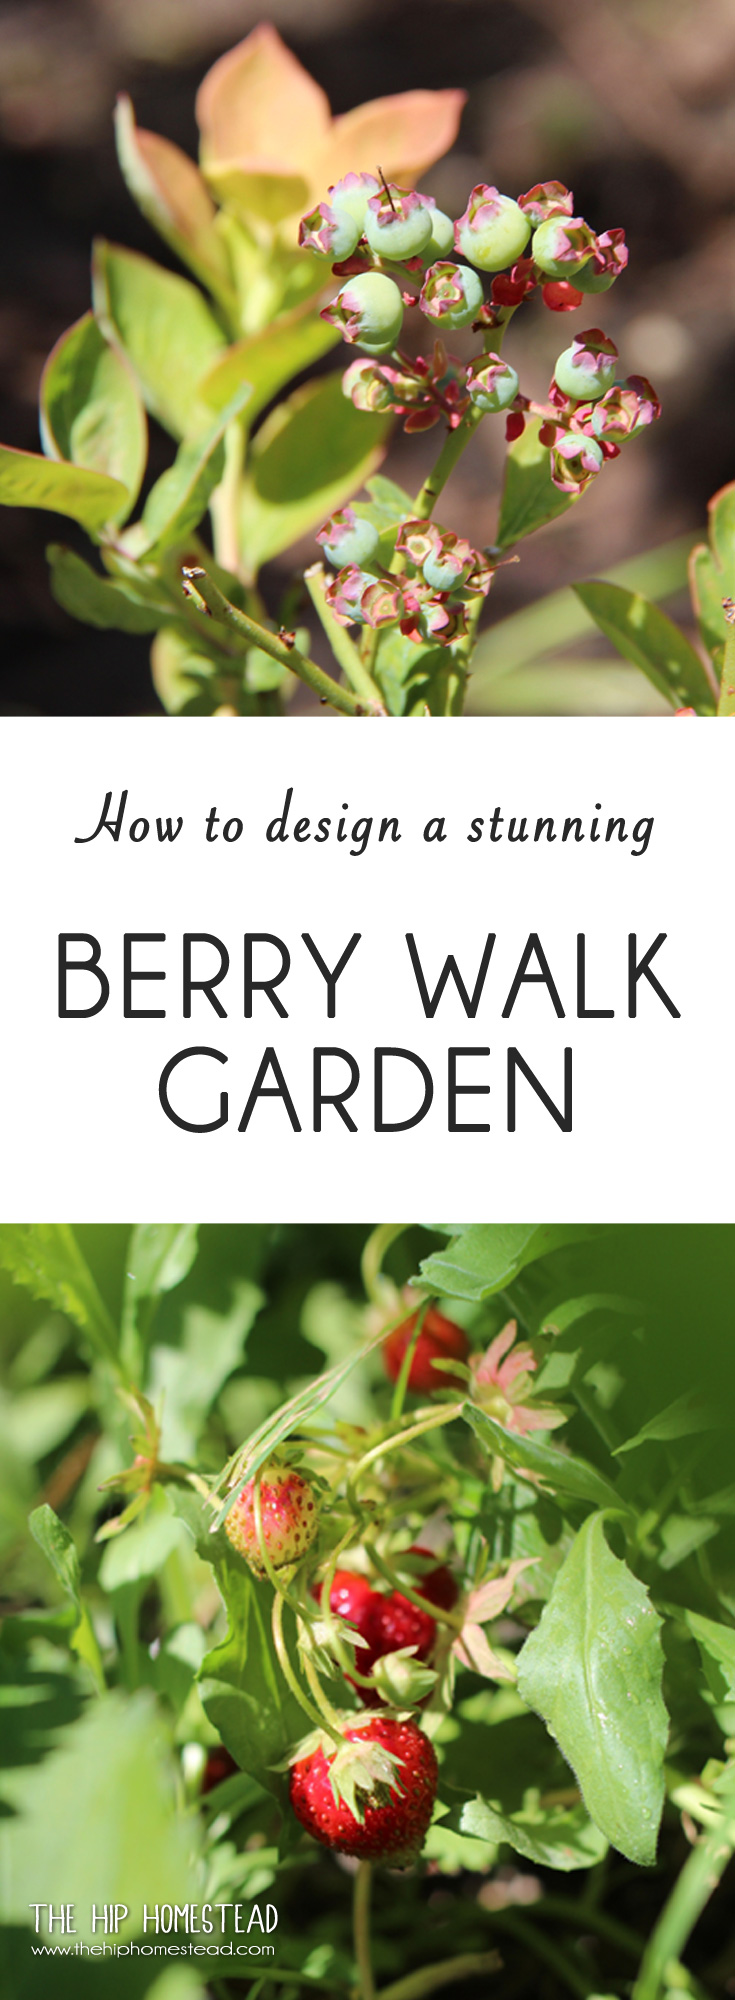 to design and plant a stunning berry walk garden the hip homestead